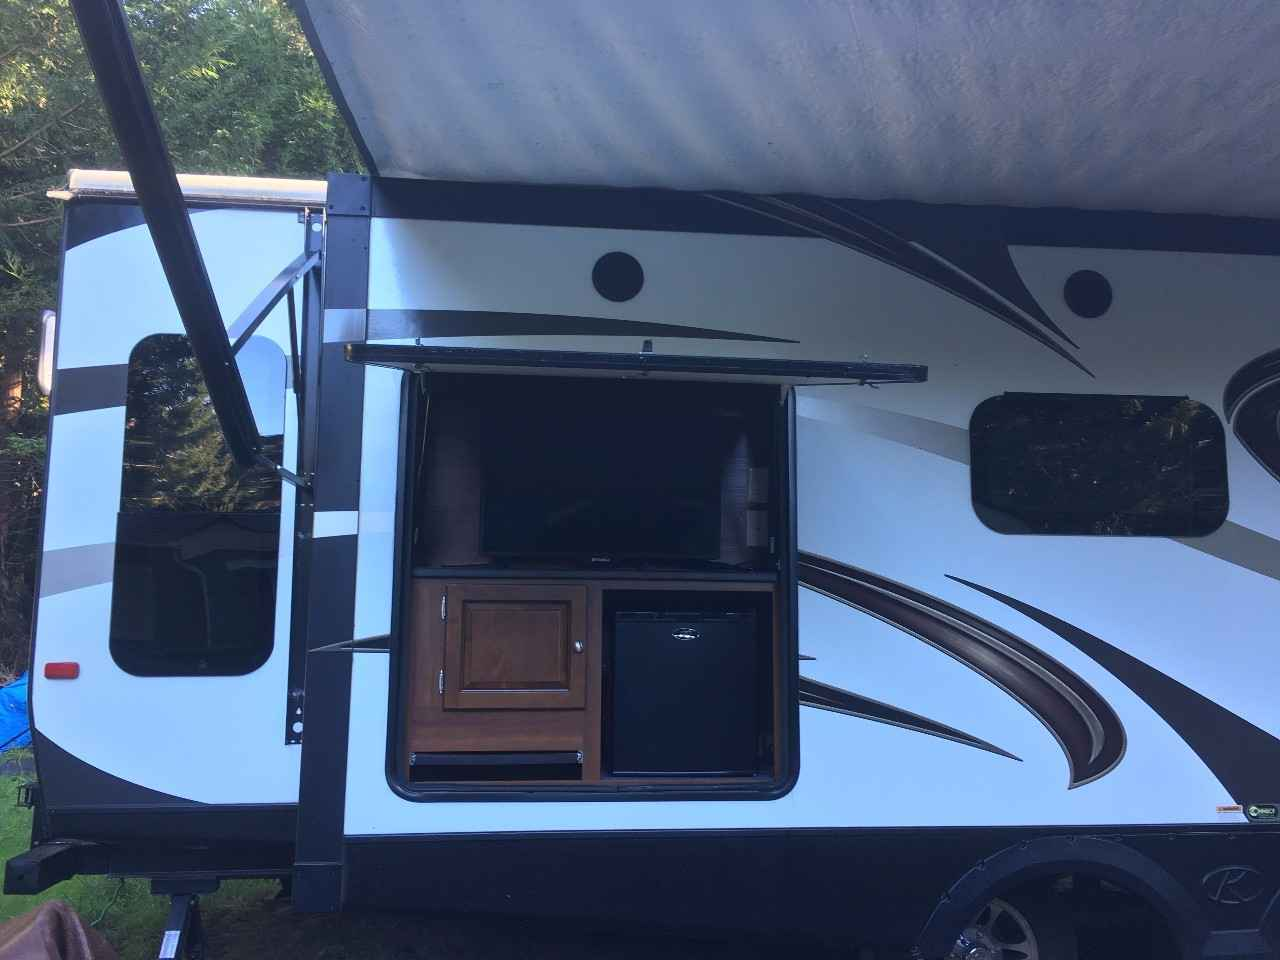 Outdoor entertainment compartment with mini refrigerator and TV.. Keystone Premier Ultra Lite 2015